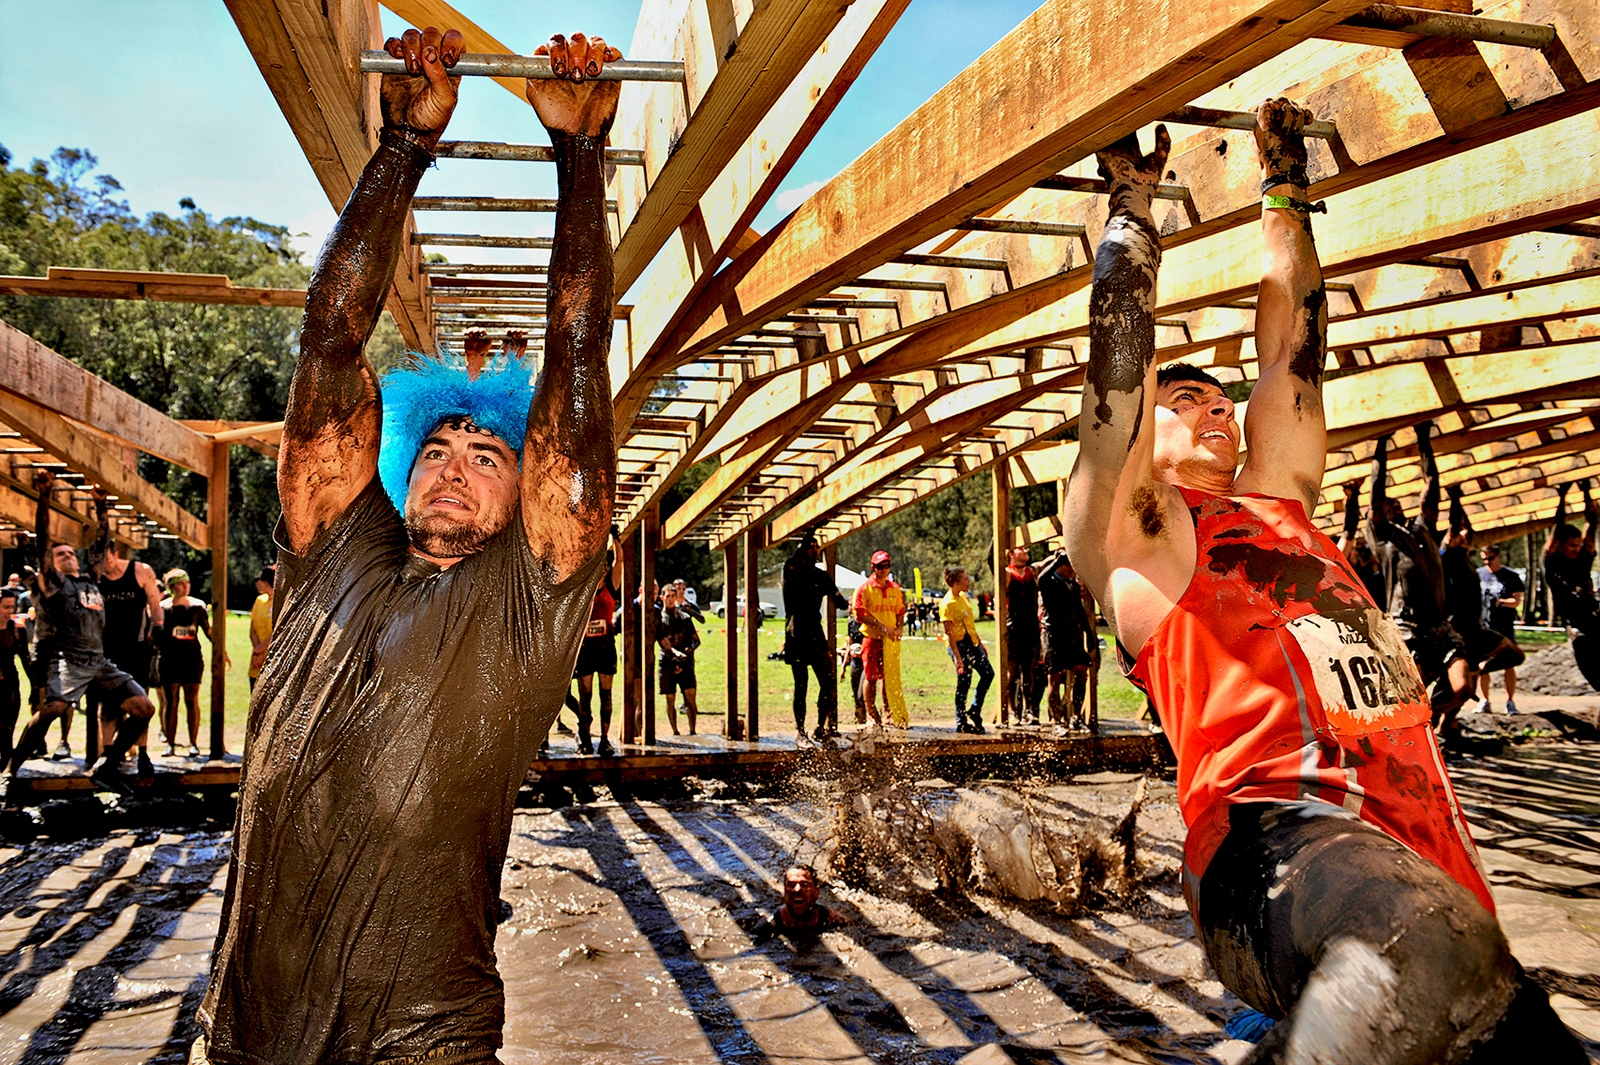 Tough Mud monkey bars